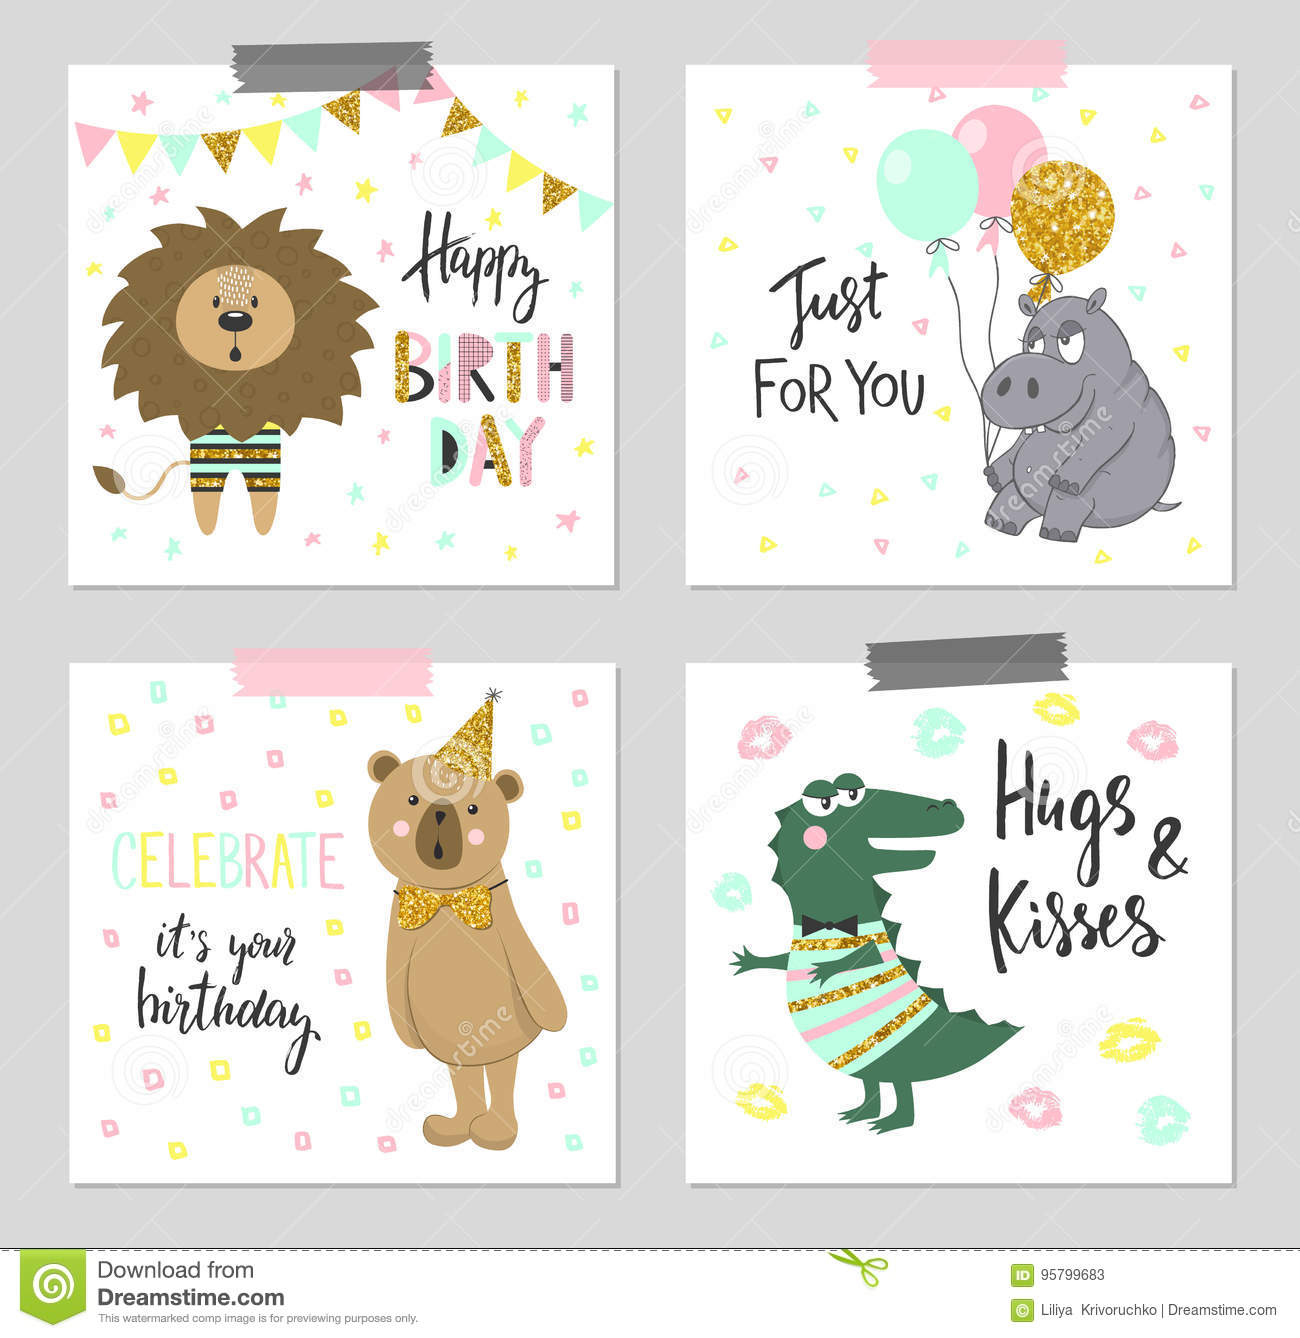 Happy Birthday Greeting Cards And Party Invitation Templates With Cute Animals